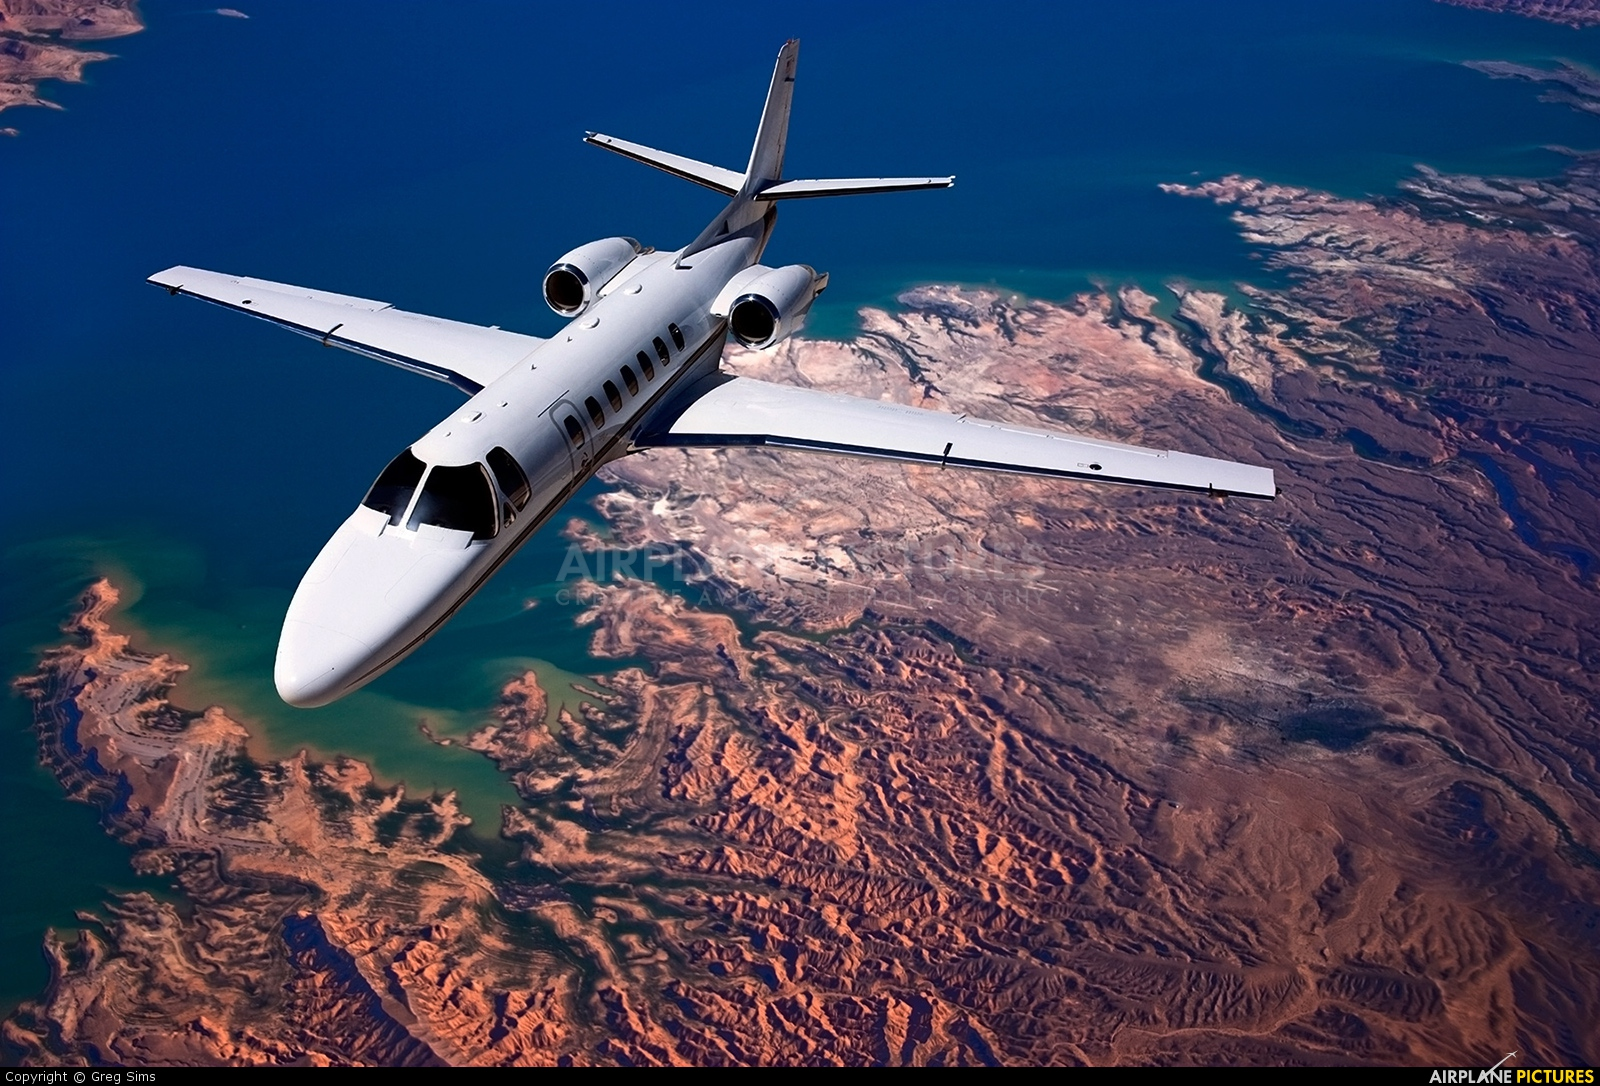 Private - aircraft at In Flight - Nevada